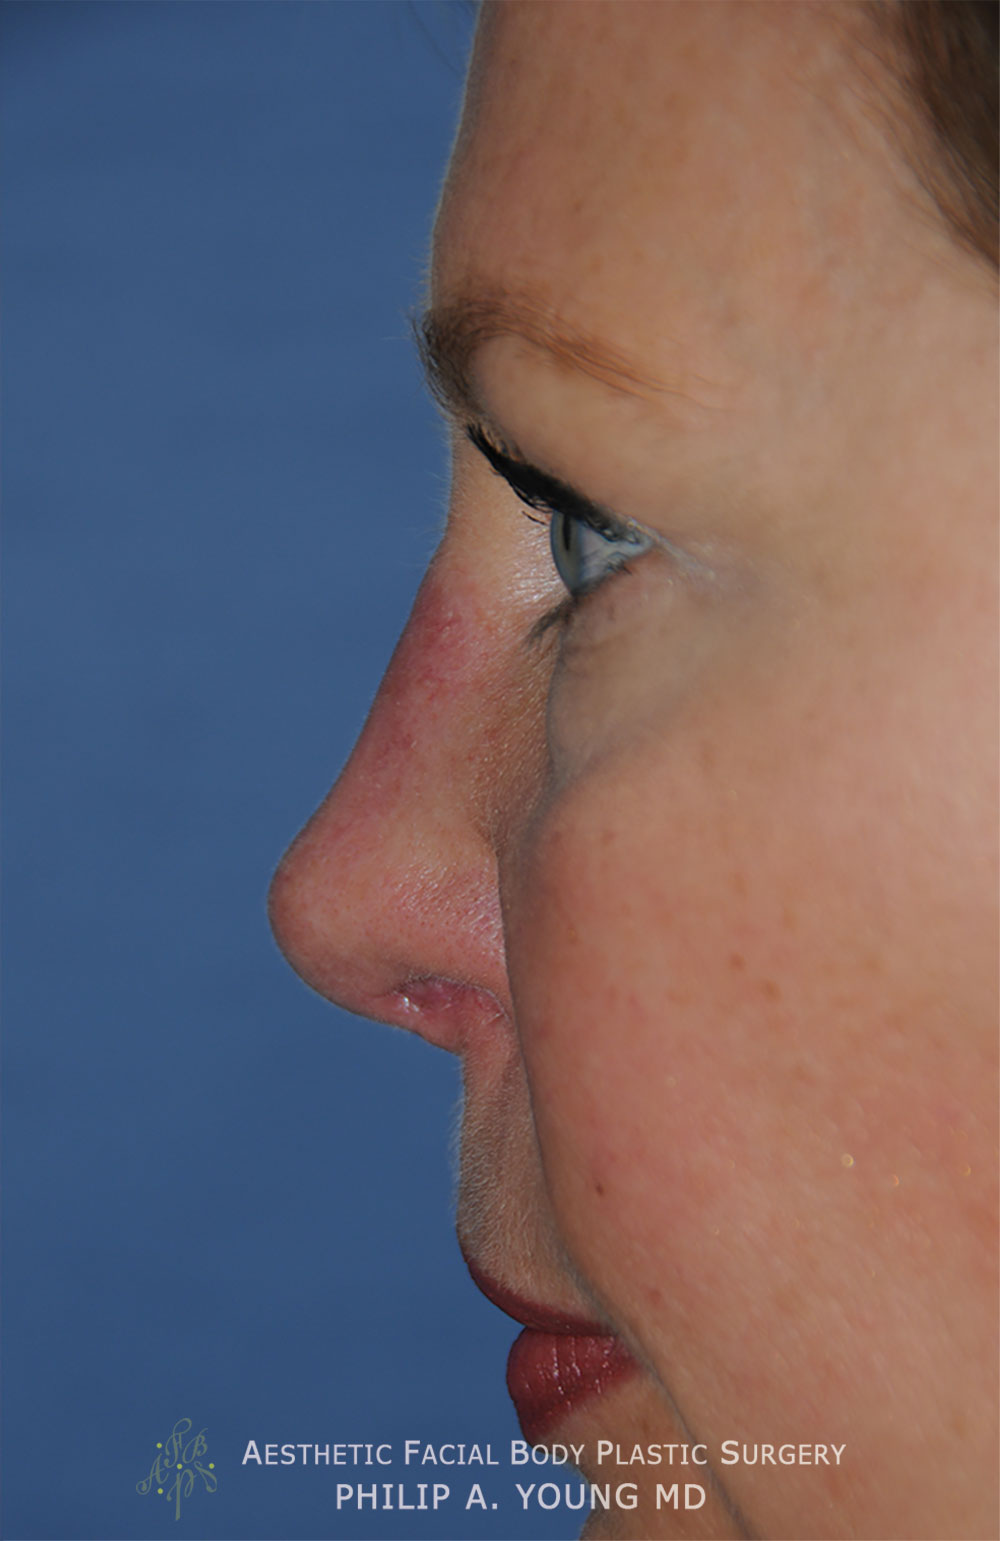 After Revision Rhinoplasty for Crooked Tip, Crooked Nasal Bridge, Nose Bridge Dorsal Irregularities, Hook & Droopy Nasal Tip, Retracted Alae Nostrils Left Side Close Up View.